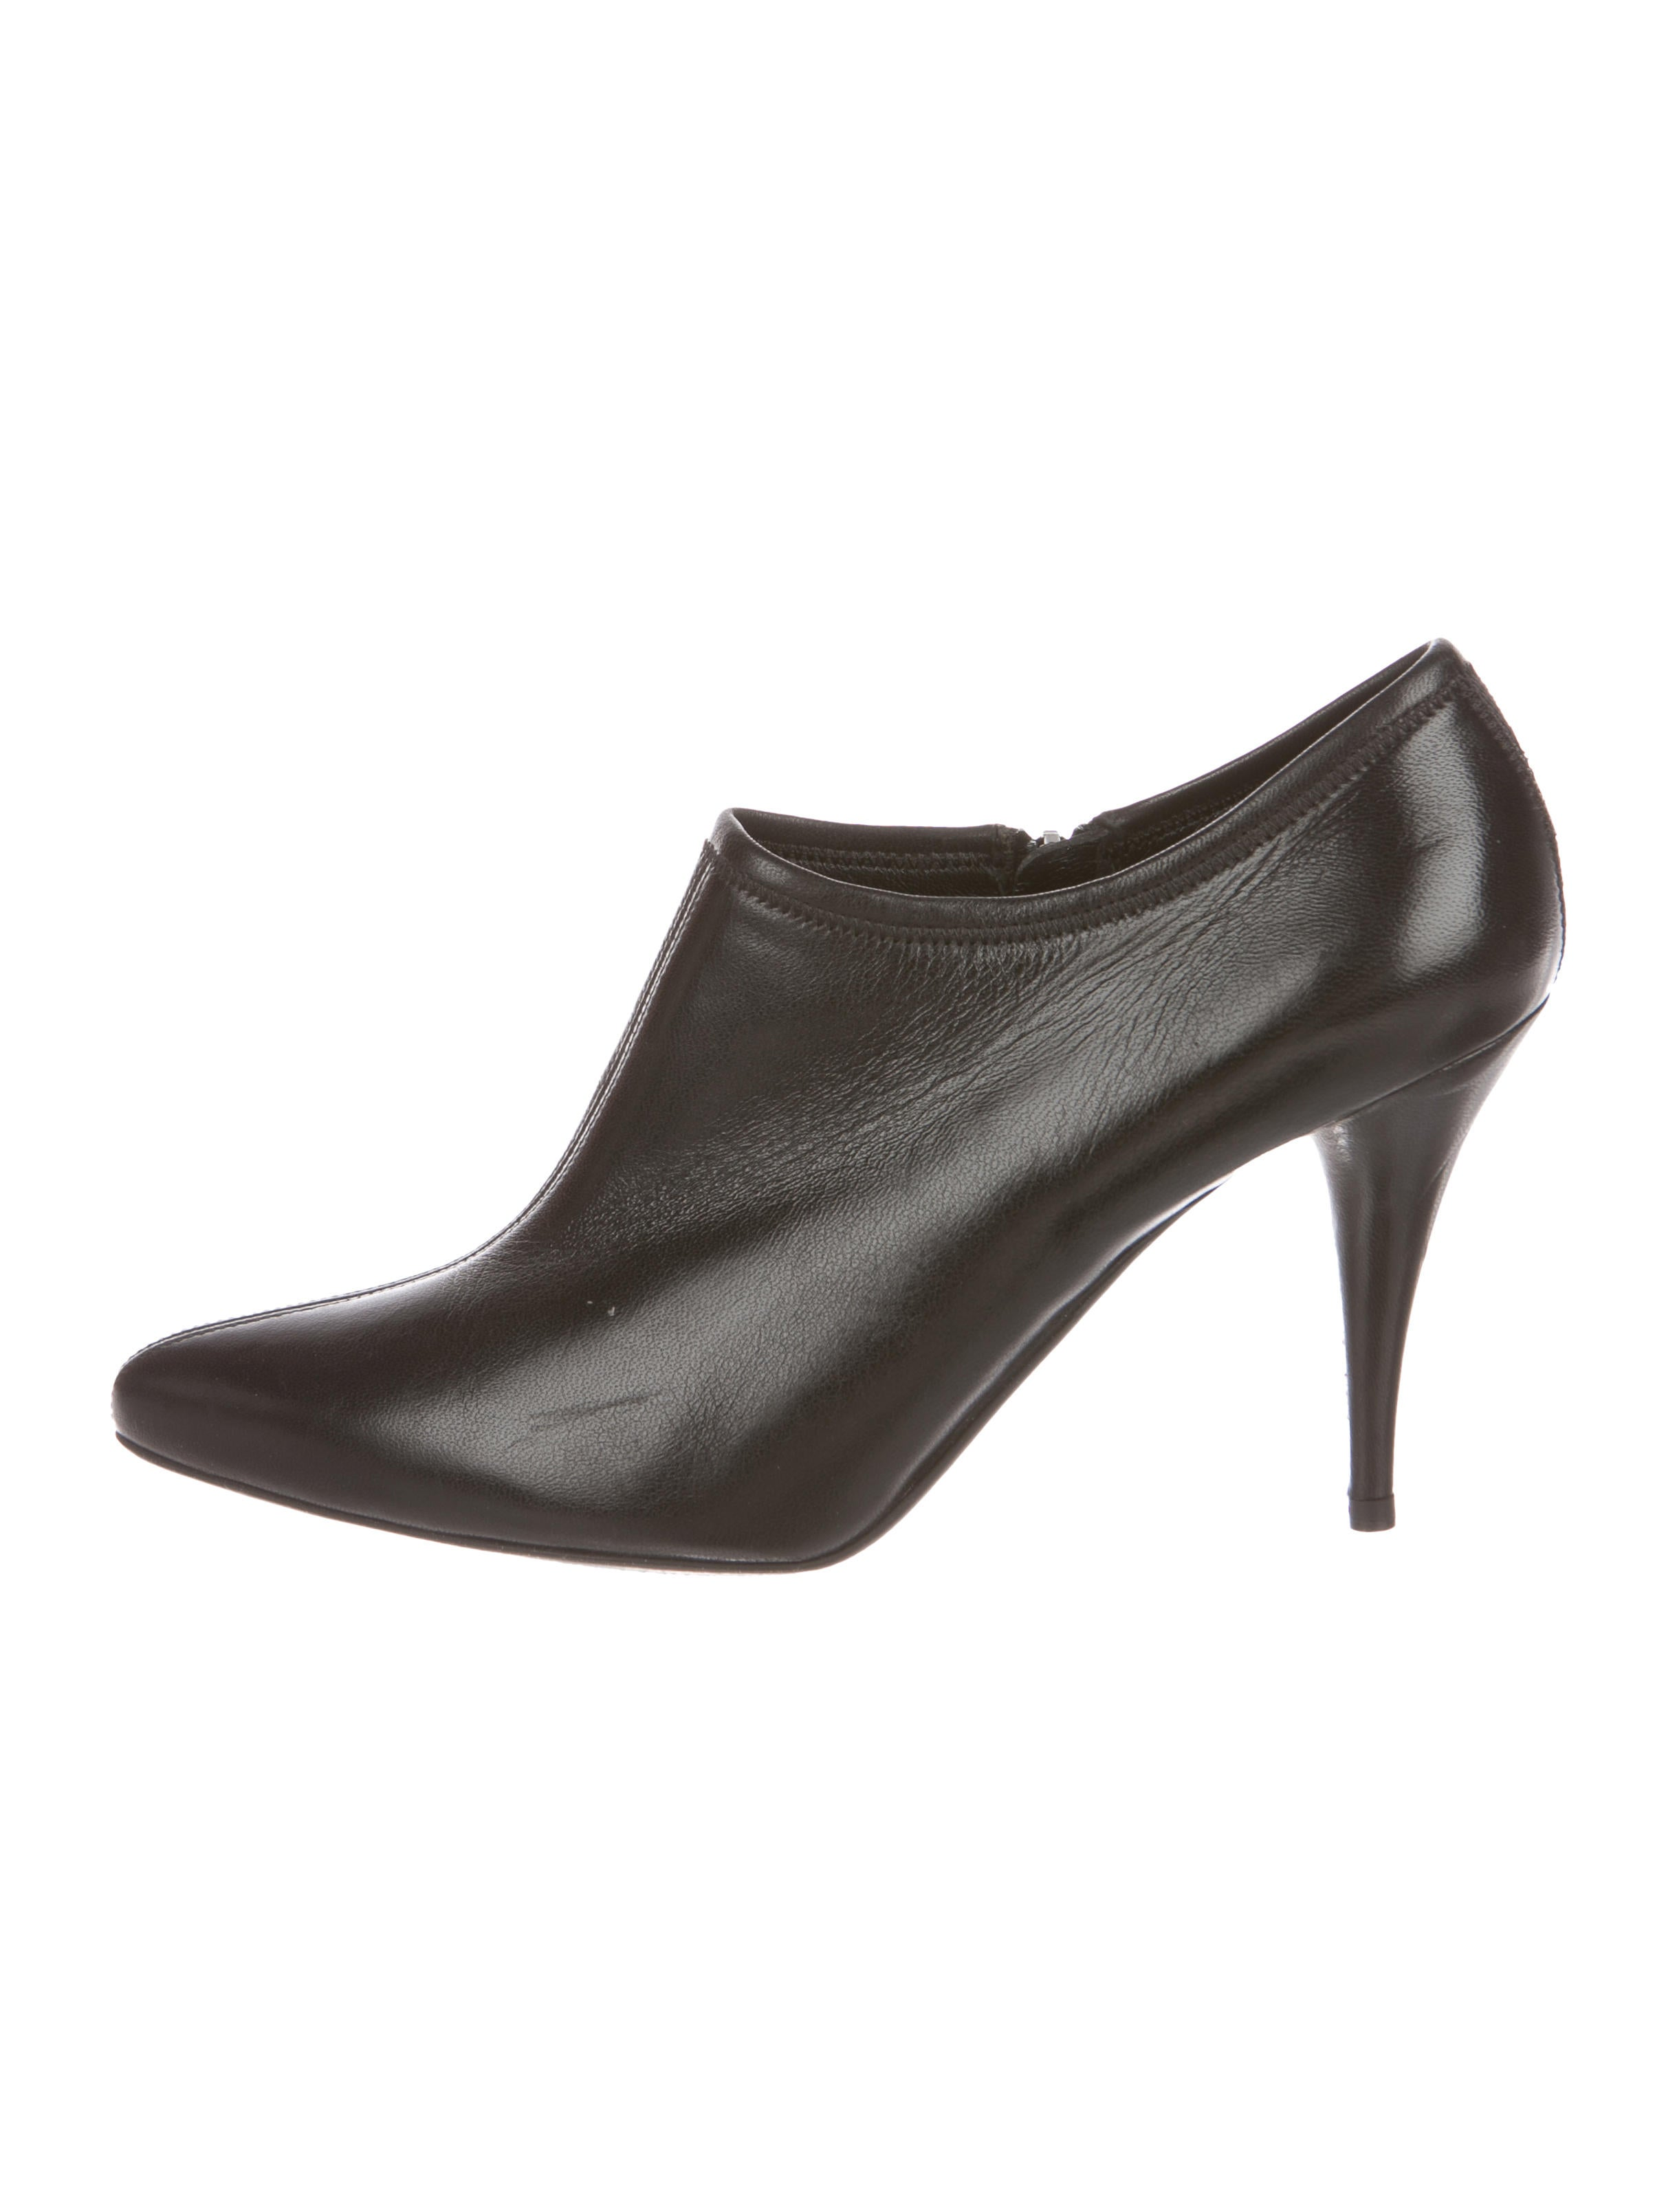 Prada Sport Leather Pointed-Toe Boots buy cheap get to buy 2WgqO9